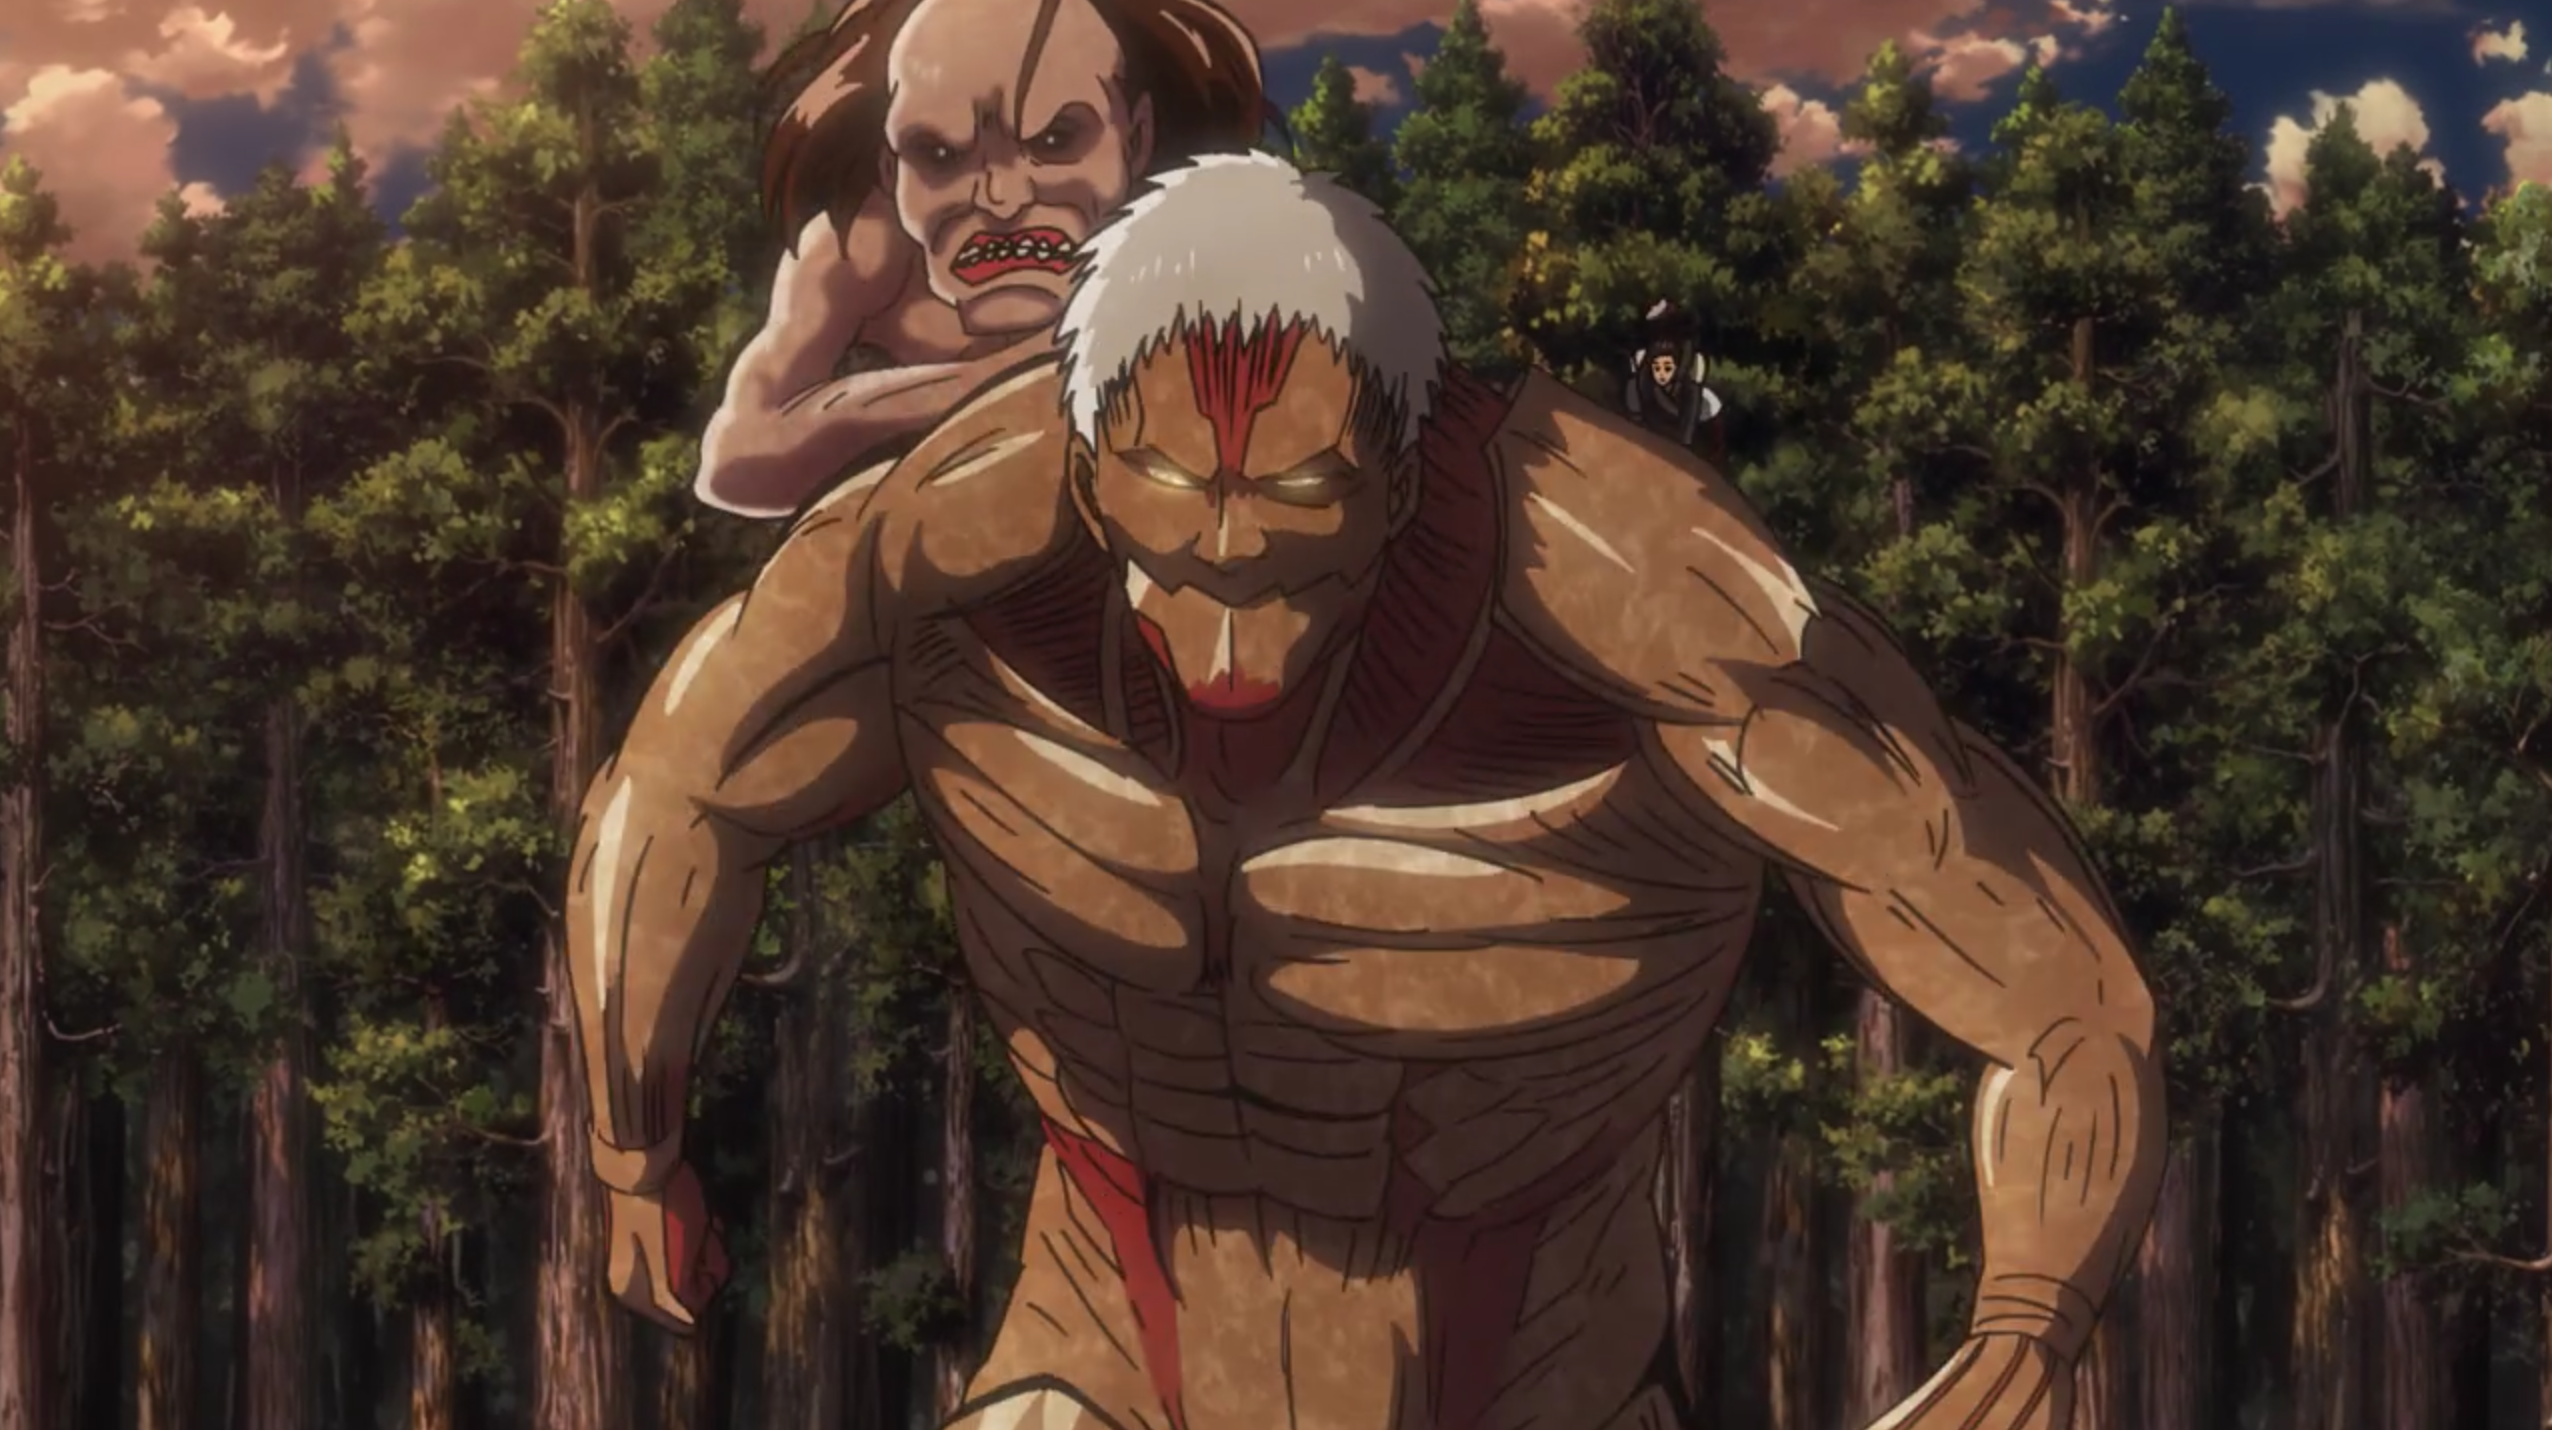 Ymir Teams Up With the Armored Titan on 'Attack on Titan' | Inverse